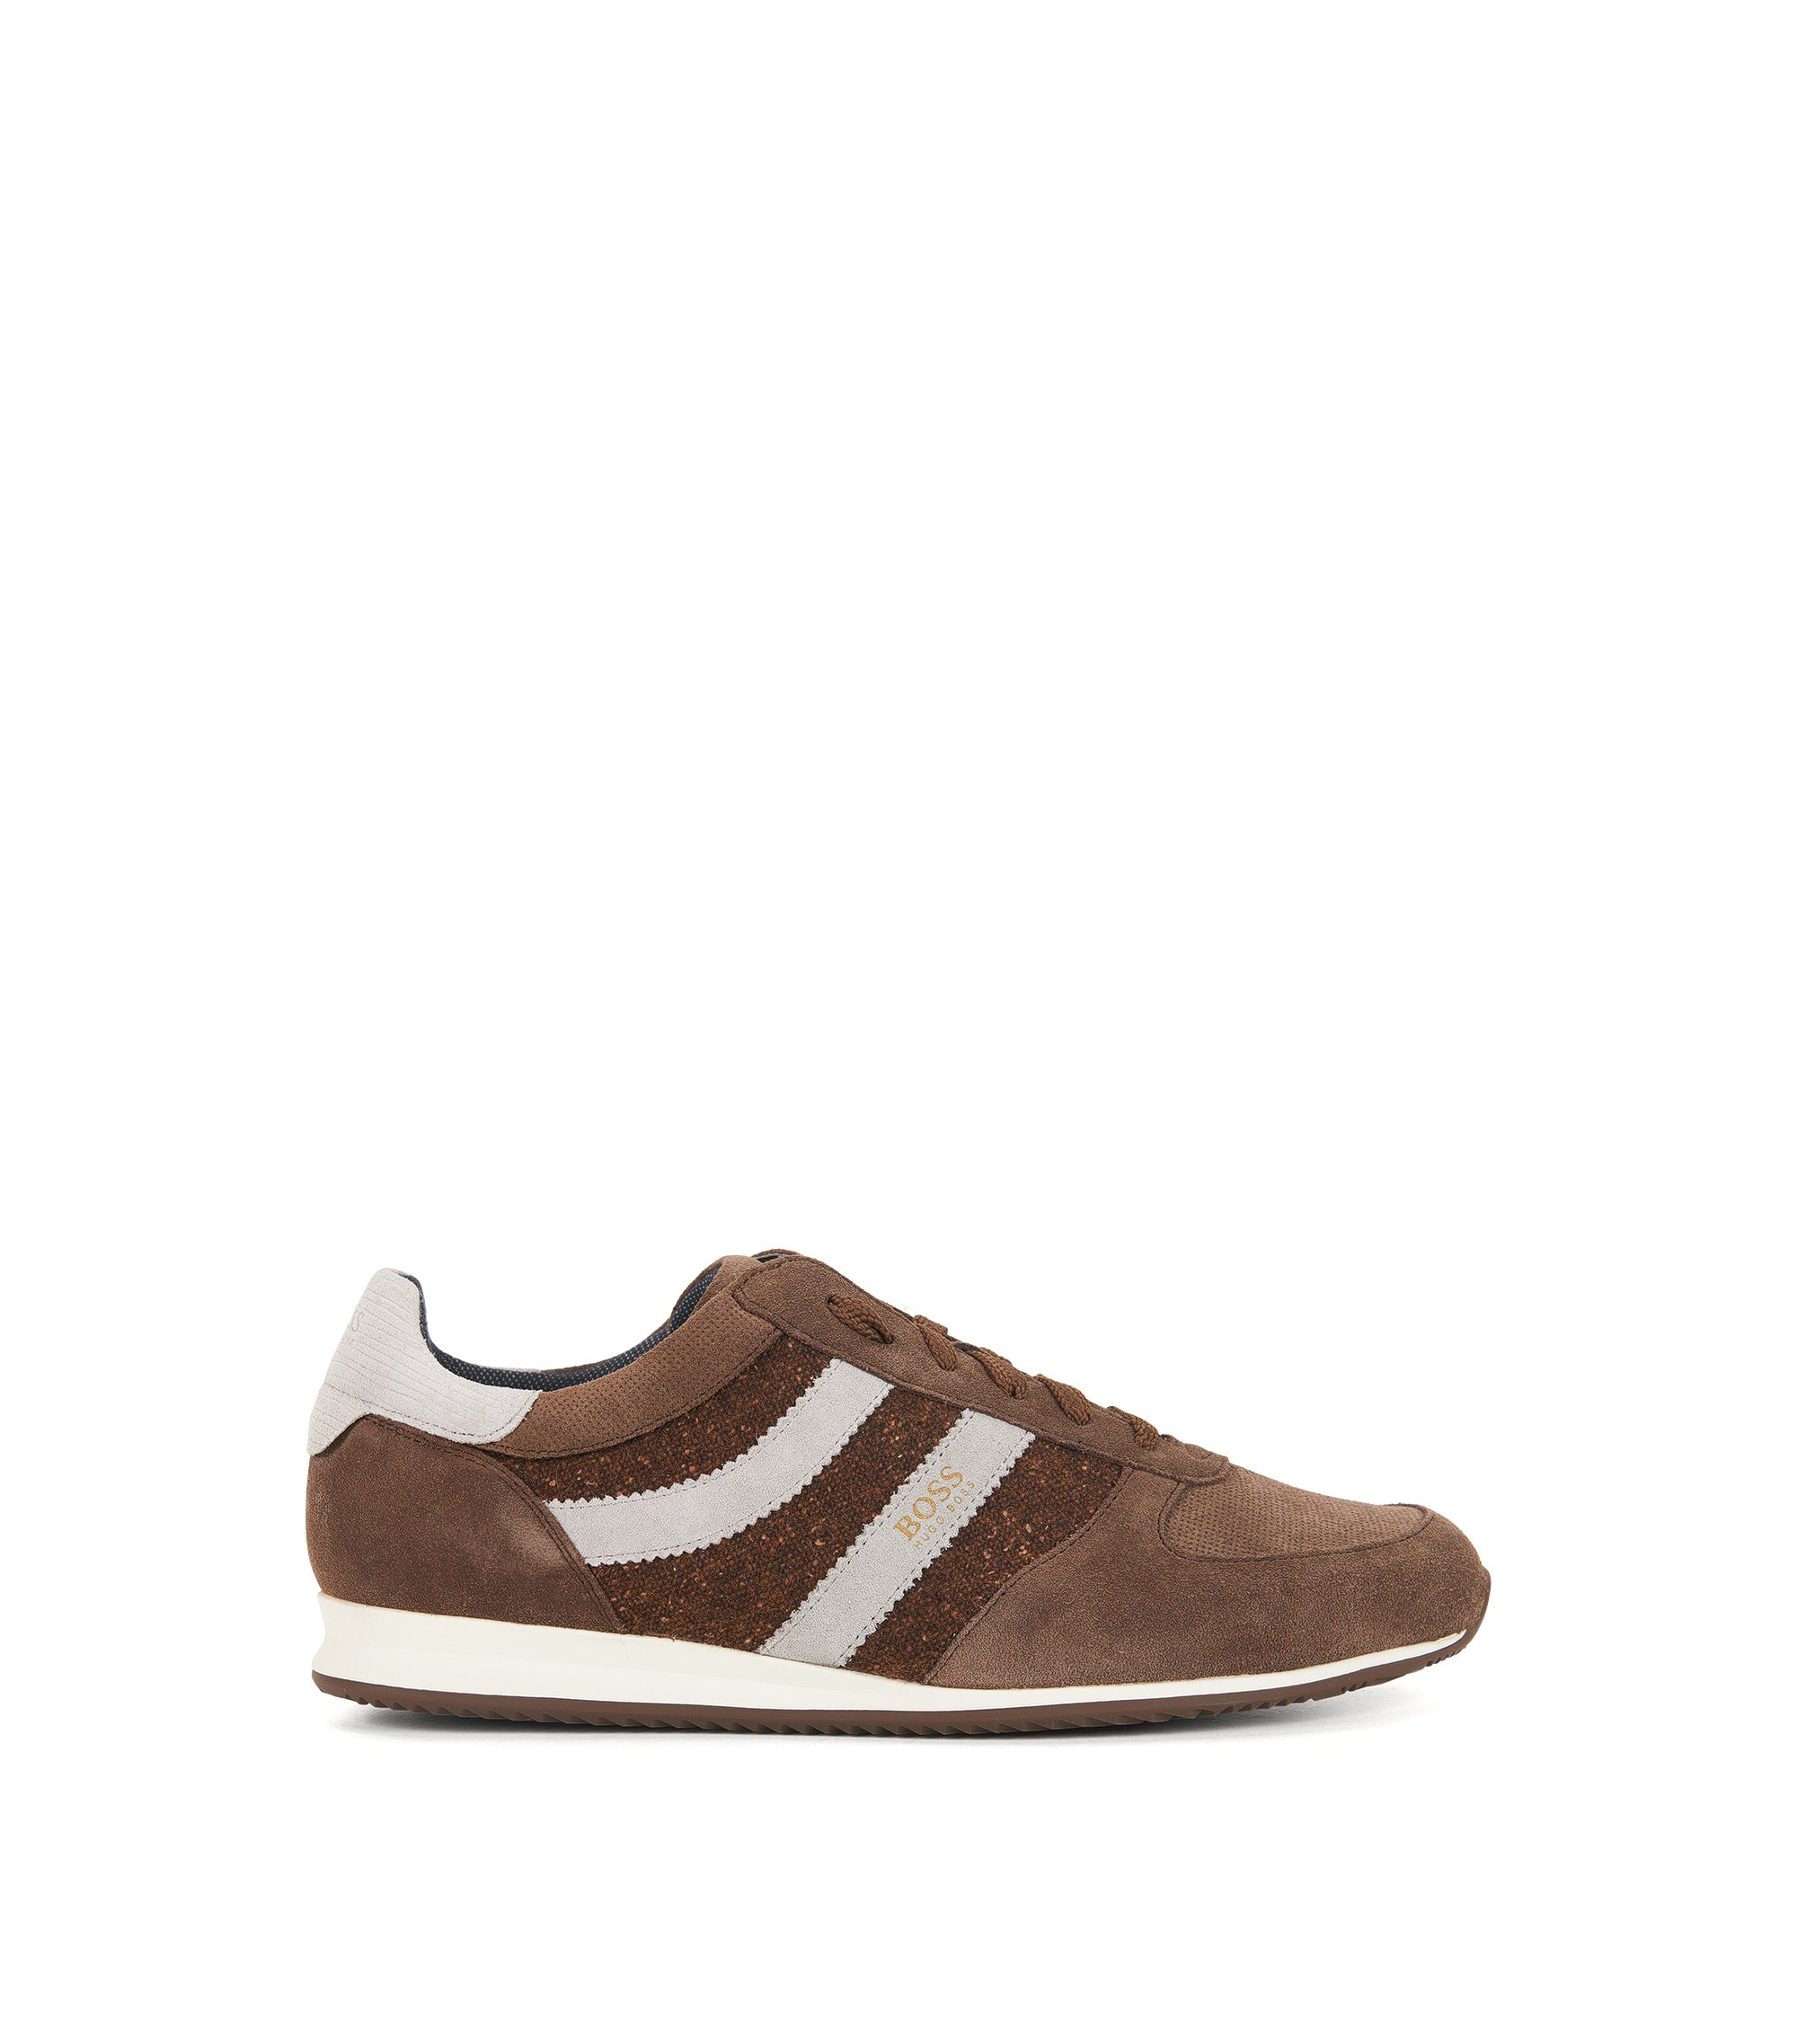 Suede Sneaker | Orlando Lowp Wlsd, Light Brown